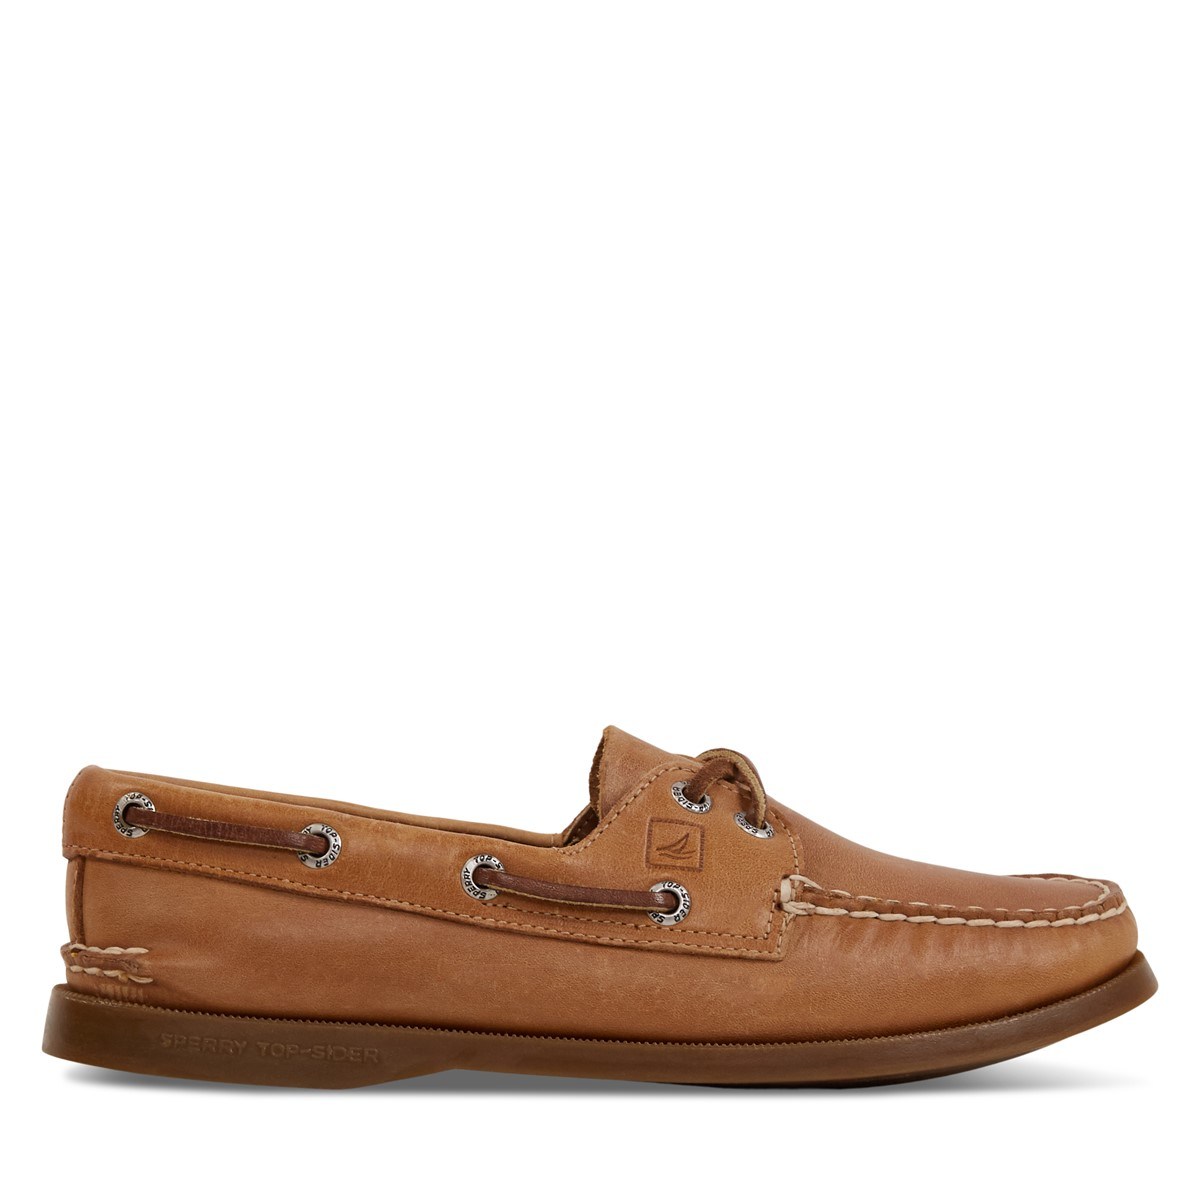 Women's Authentic Original 2-Eye Boat Shoes in Tan